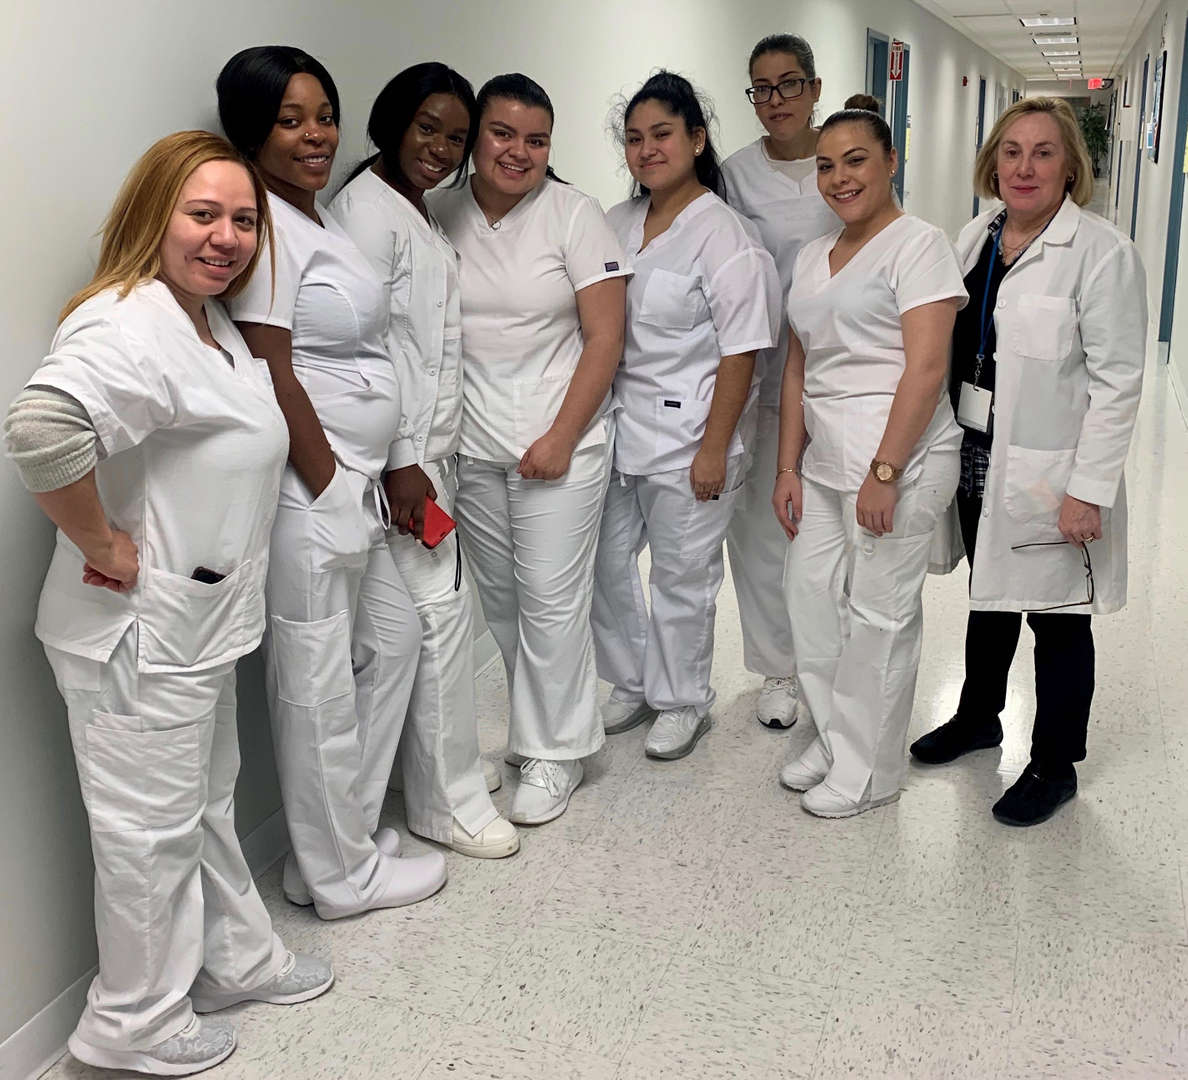 Image of Adult Nursing Students